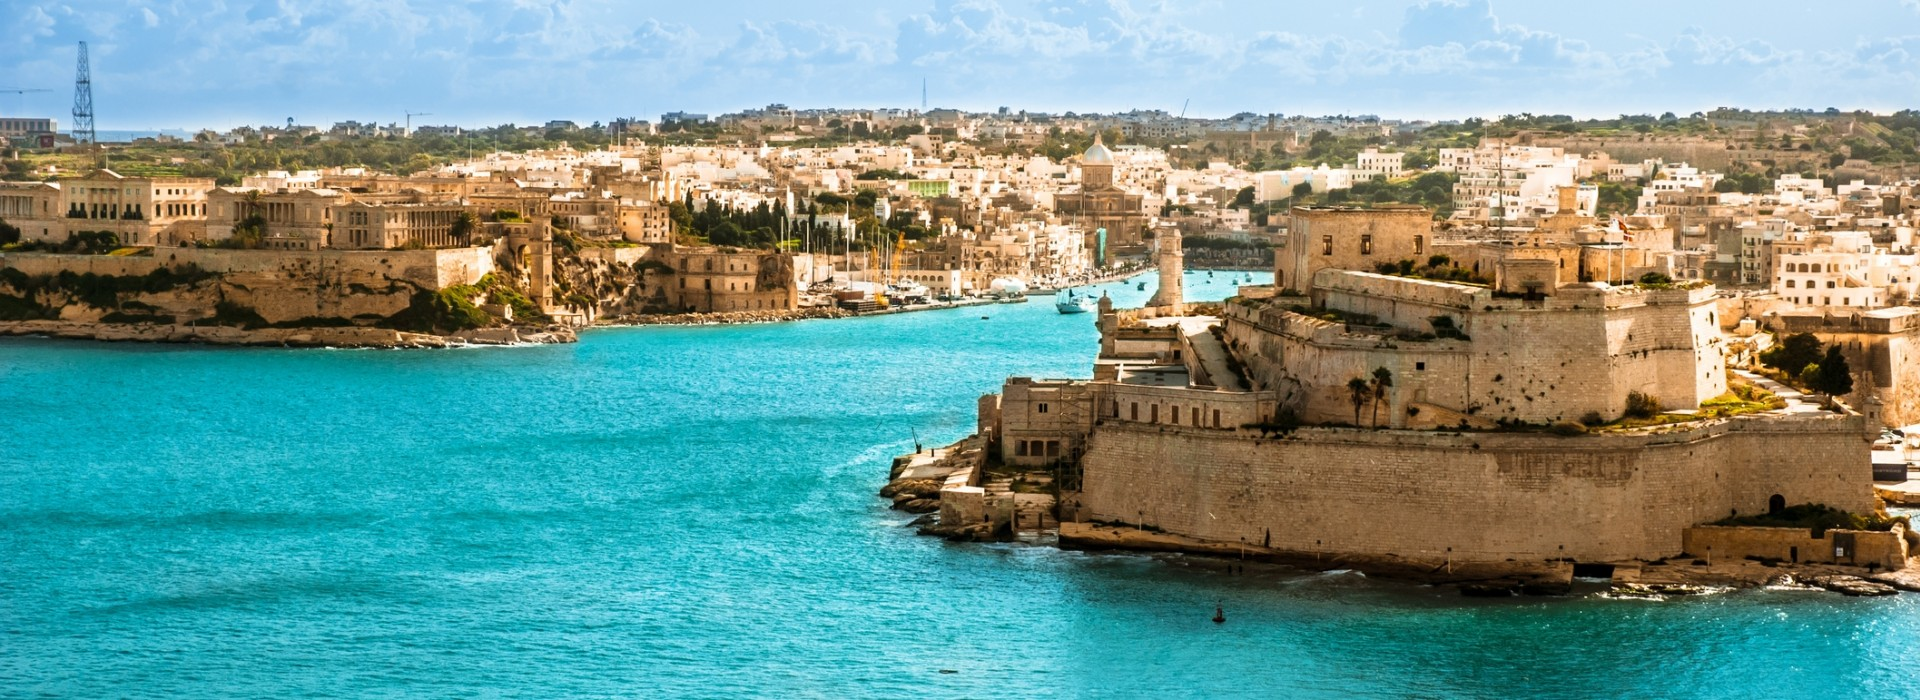 Best Malta Tours Holiday Packages Compare Prices - Malta vacation